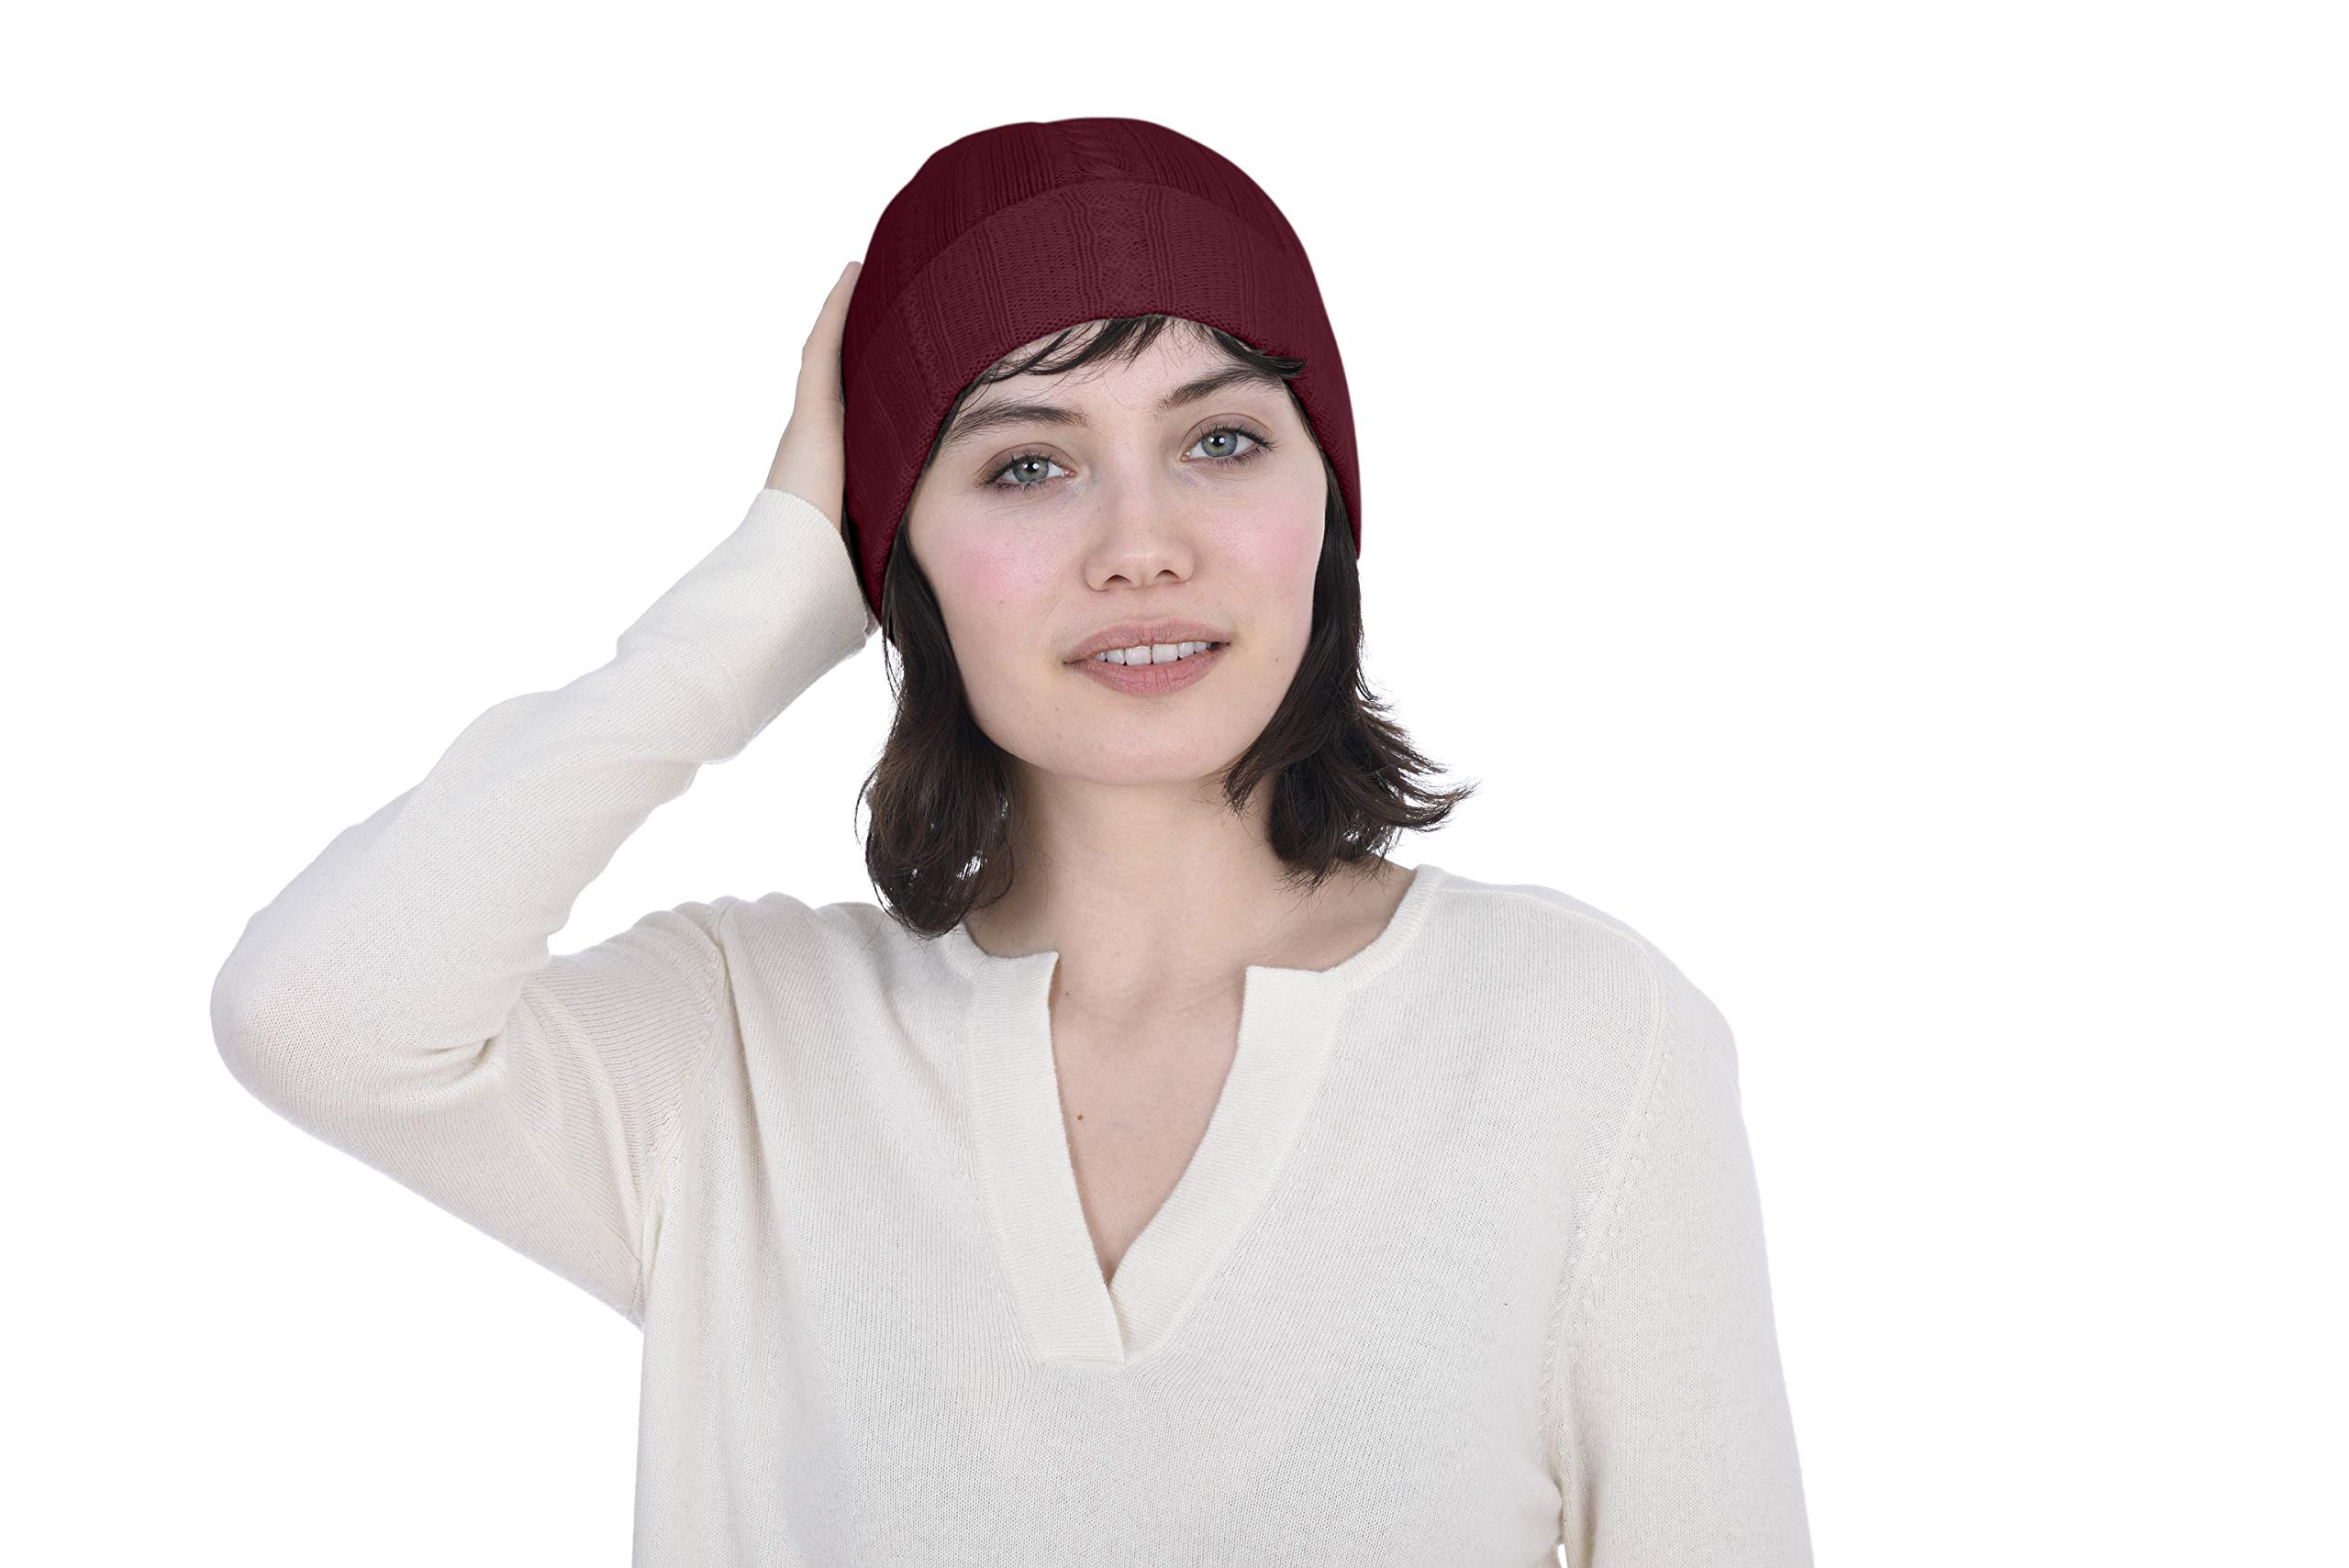 Cashmeren 100% Pure Cashmere Cable Knit Beanie Hat - Ultimate Soft, Warm and Cozy (Burgundy, One Size)